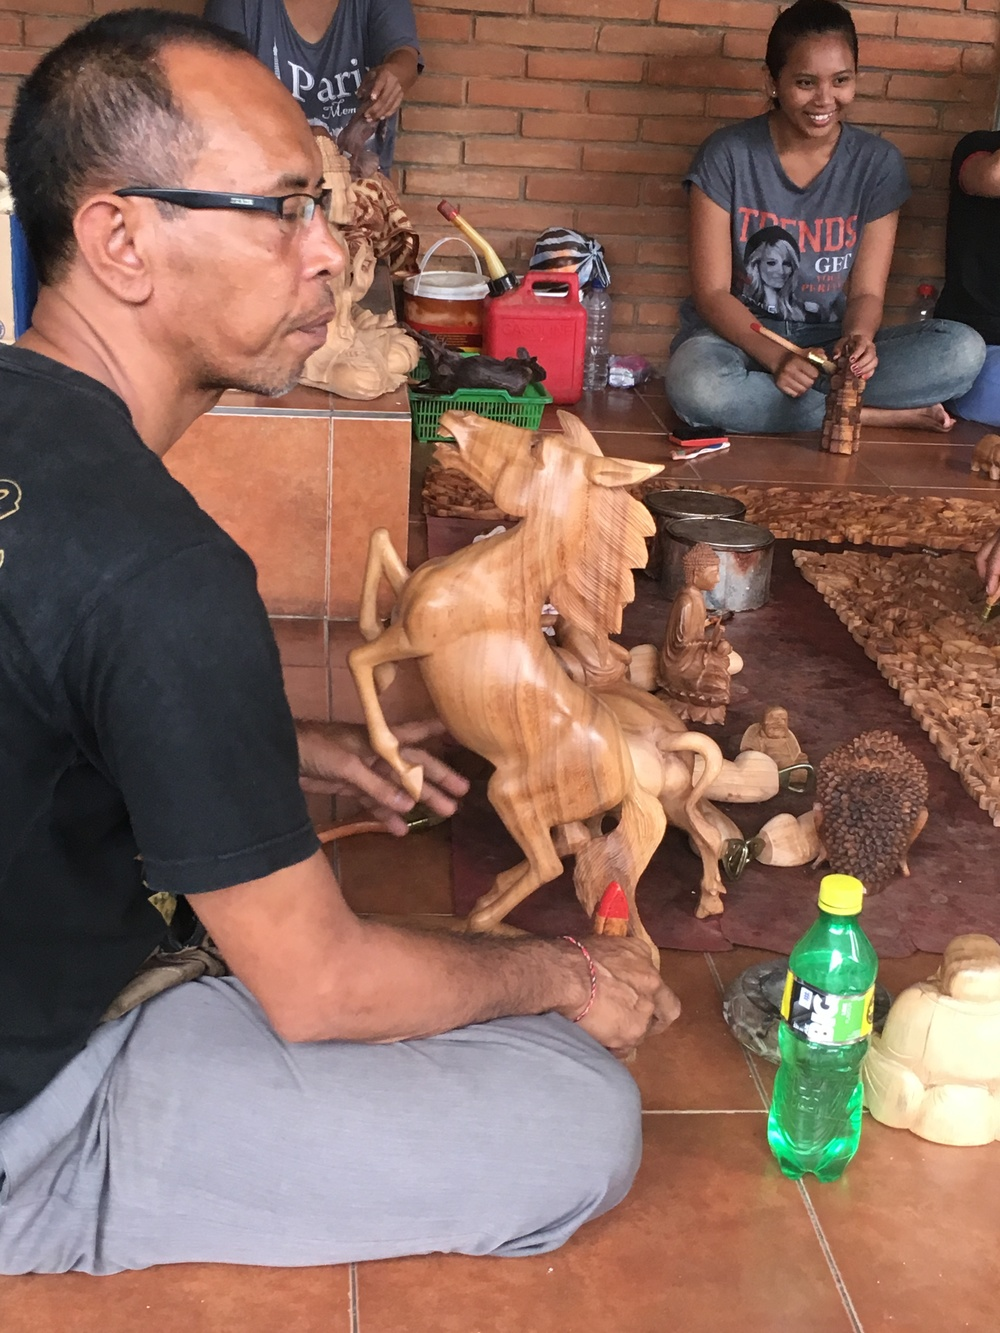 A man carving a horse out of maple wood.